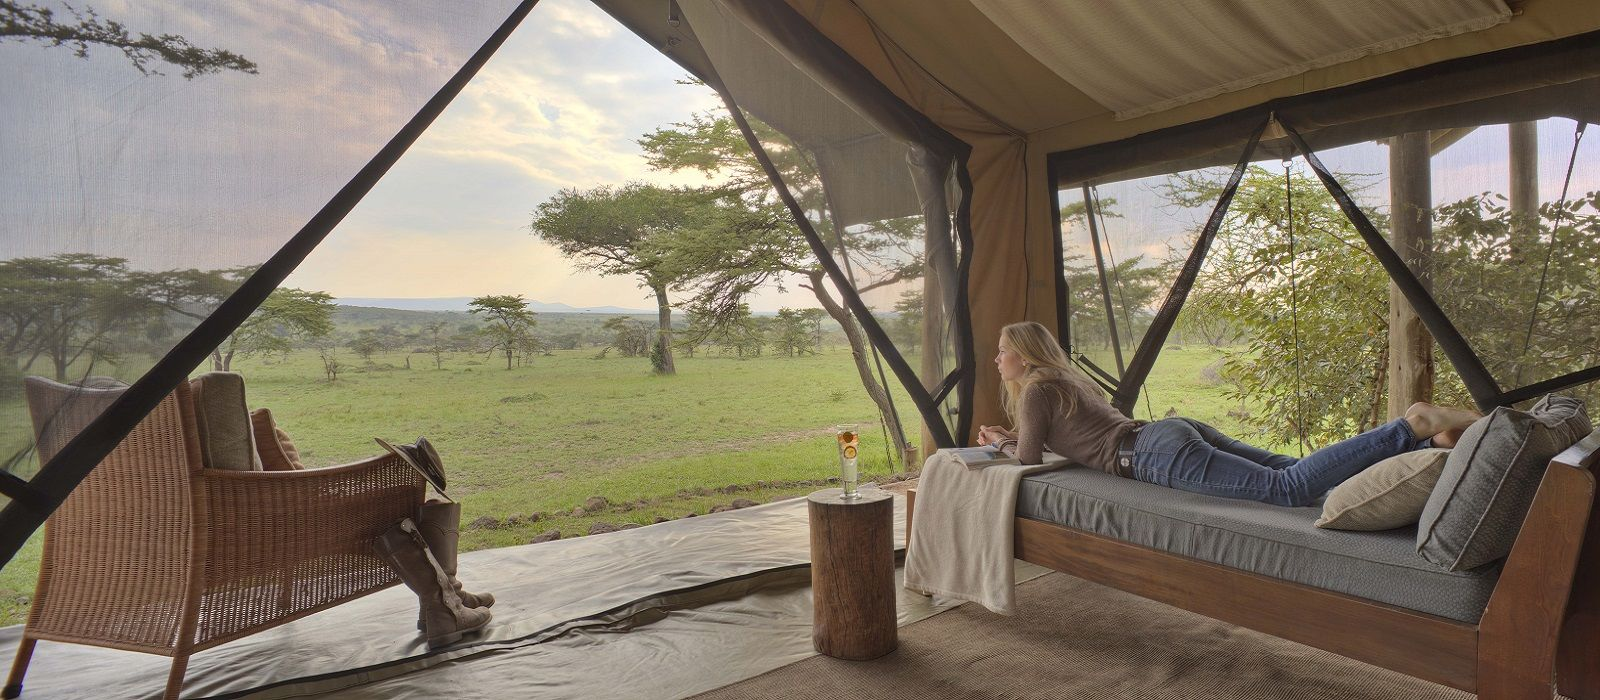 Kenya: Cultural Encounters and Wildlife Safari Tour Trip 4